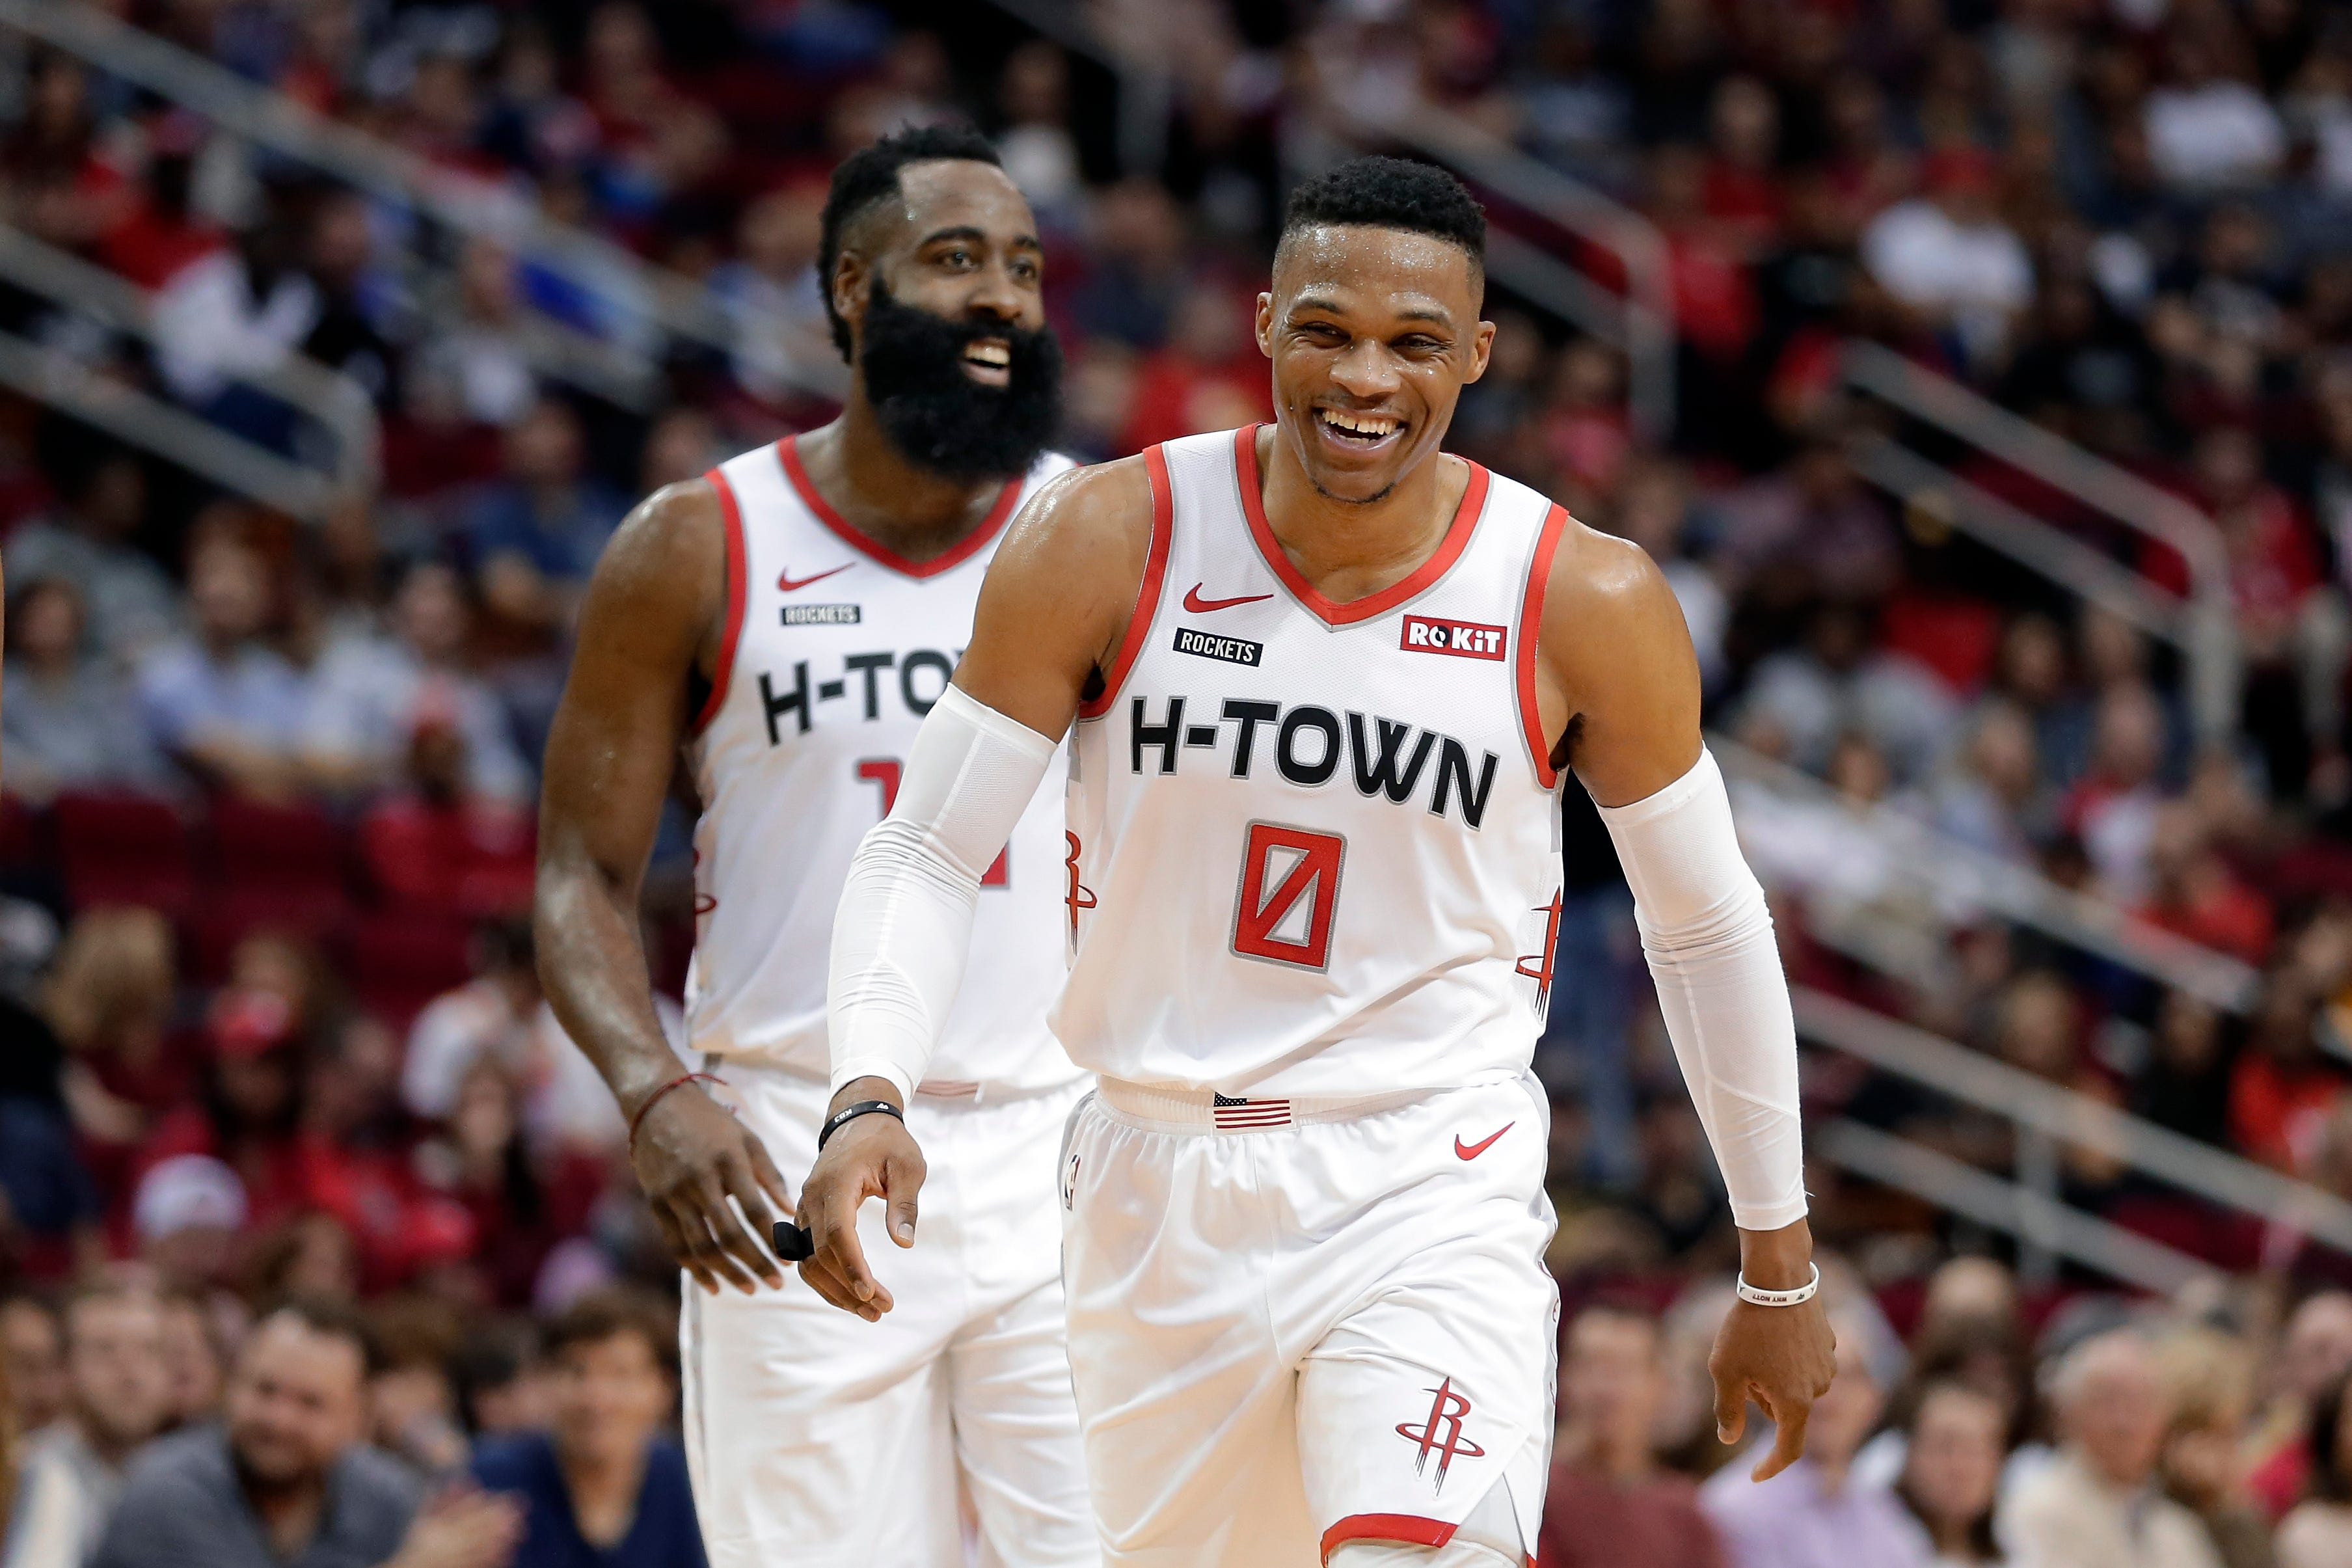 James Harden: Russell Westbrook's adjustment with Rockets might take 'whole year'